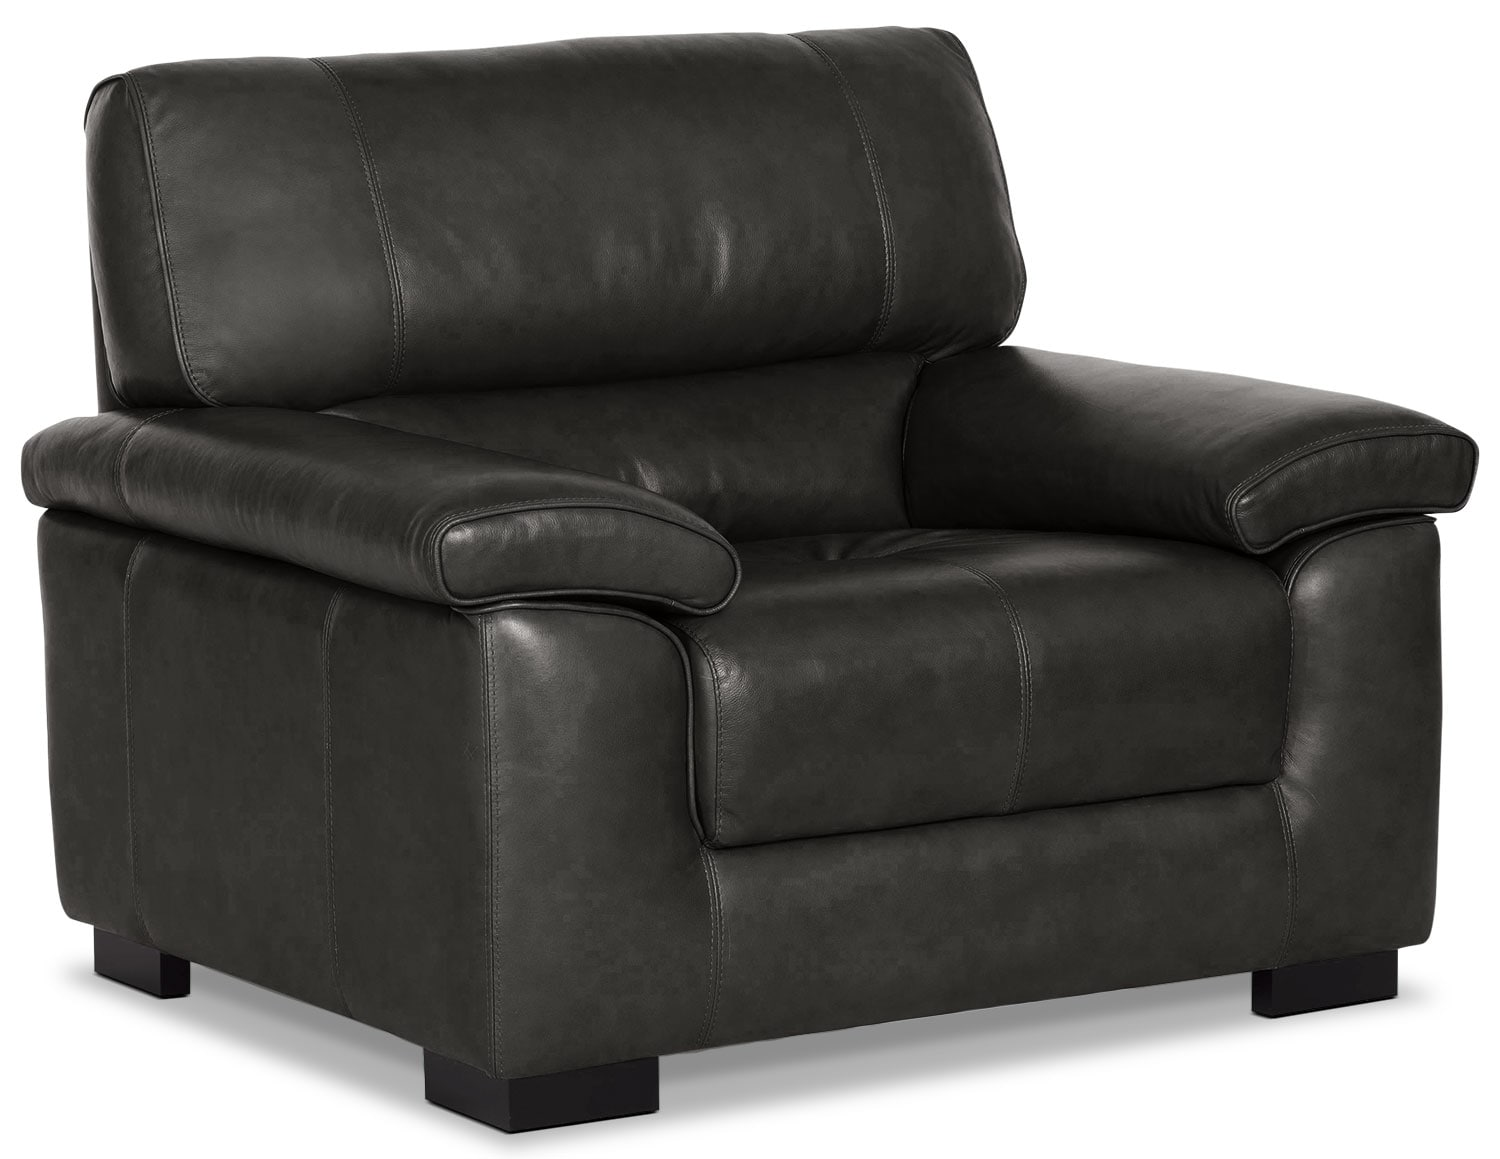 Living Room Furniture - Chateau d'Ax 100% Genuine Leather Chair - Charcoal